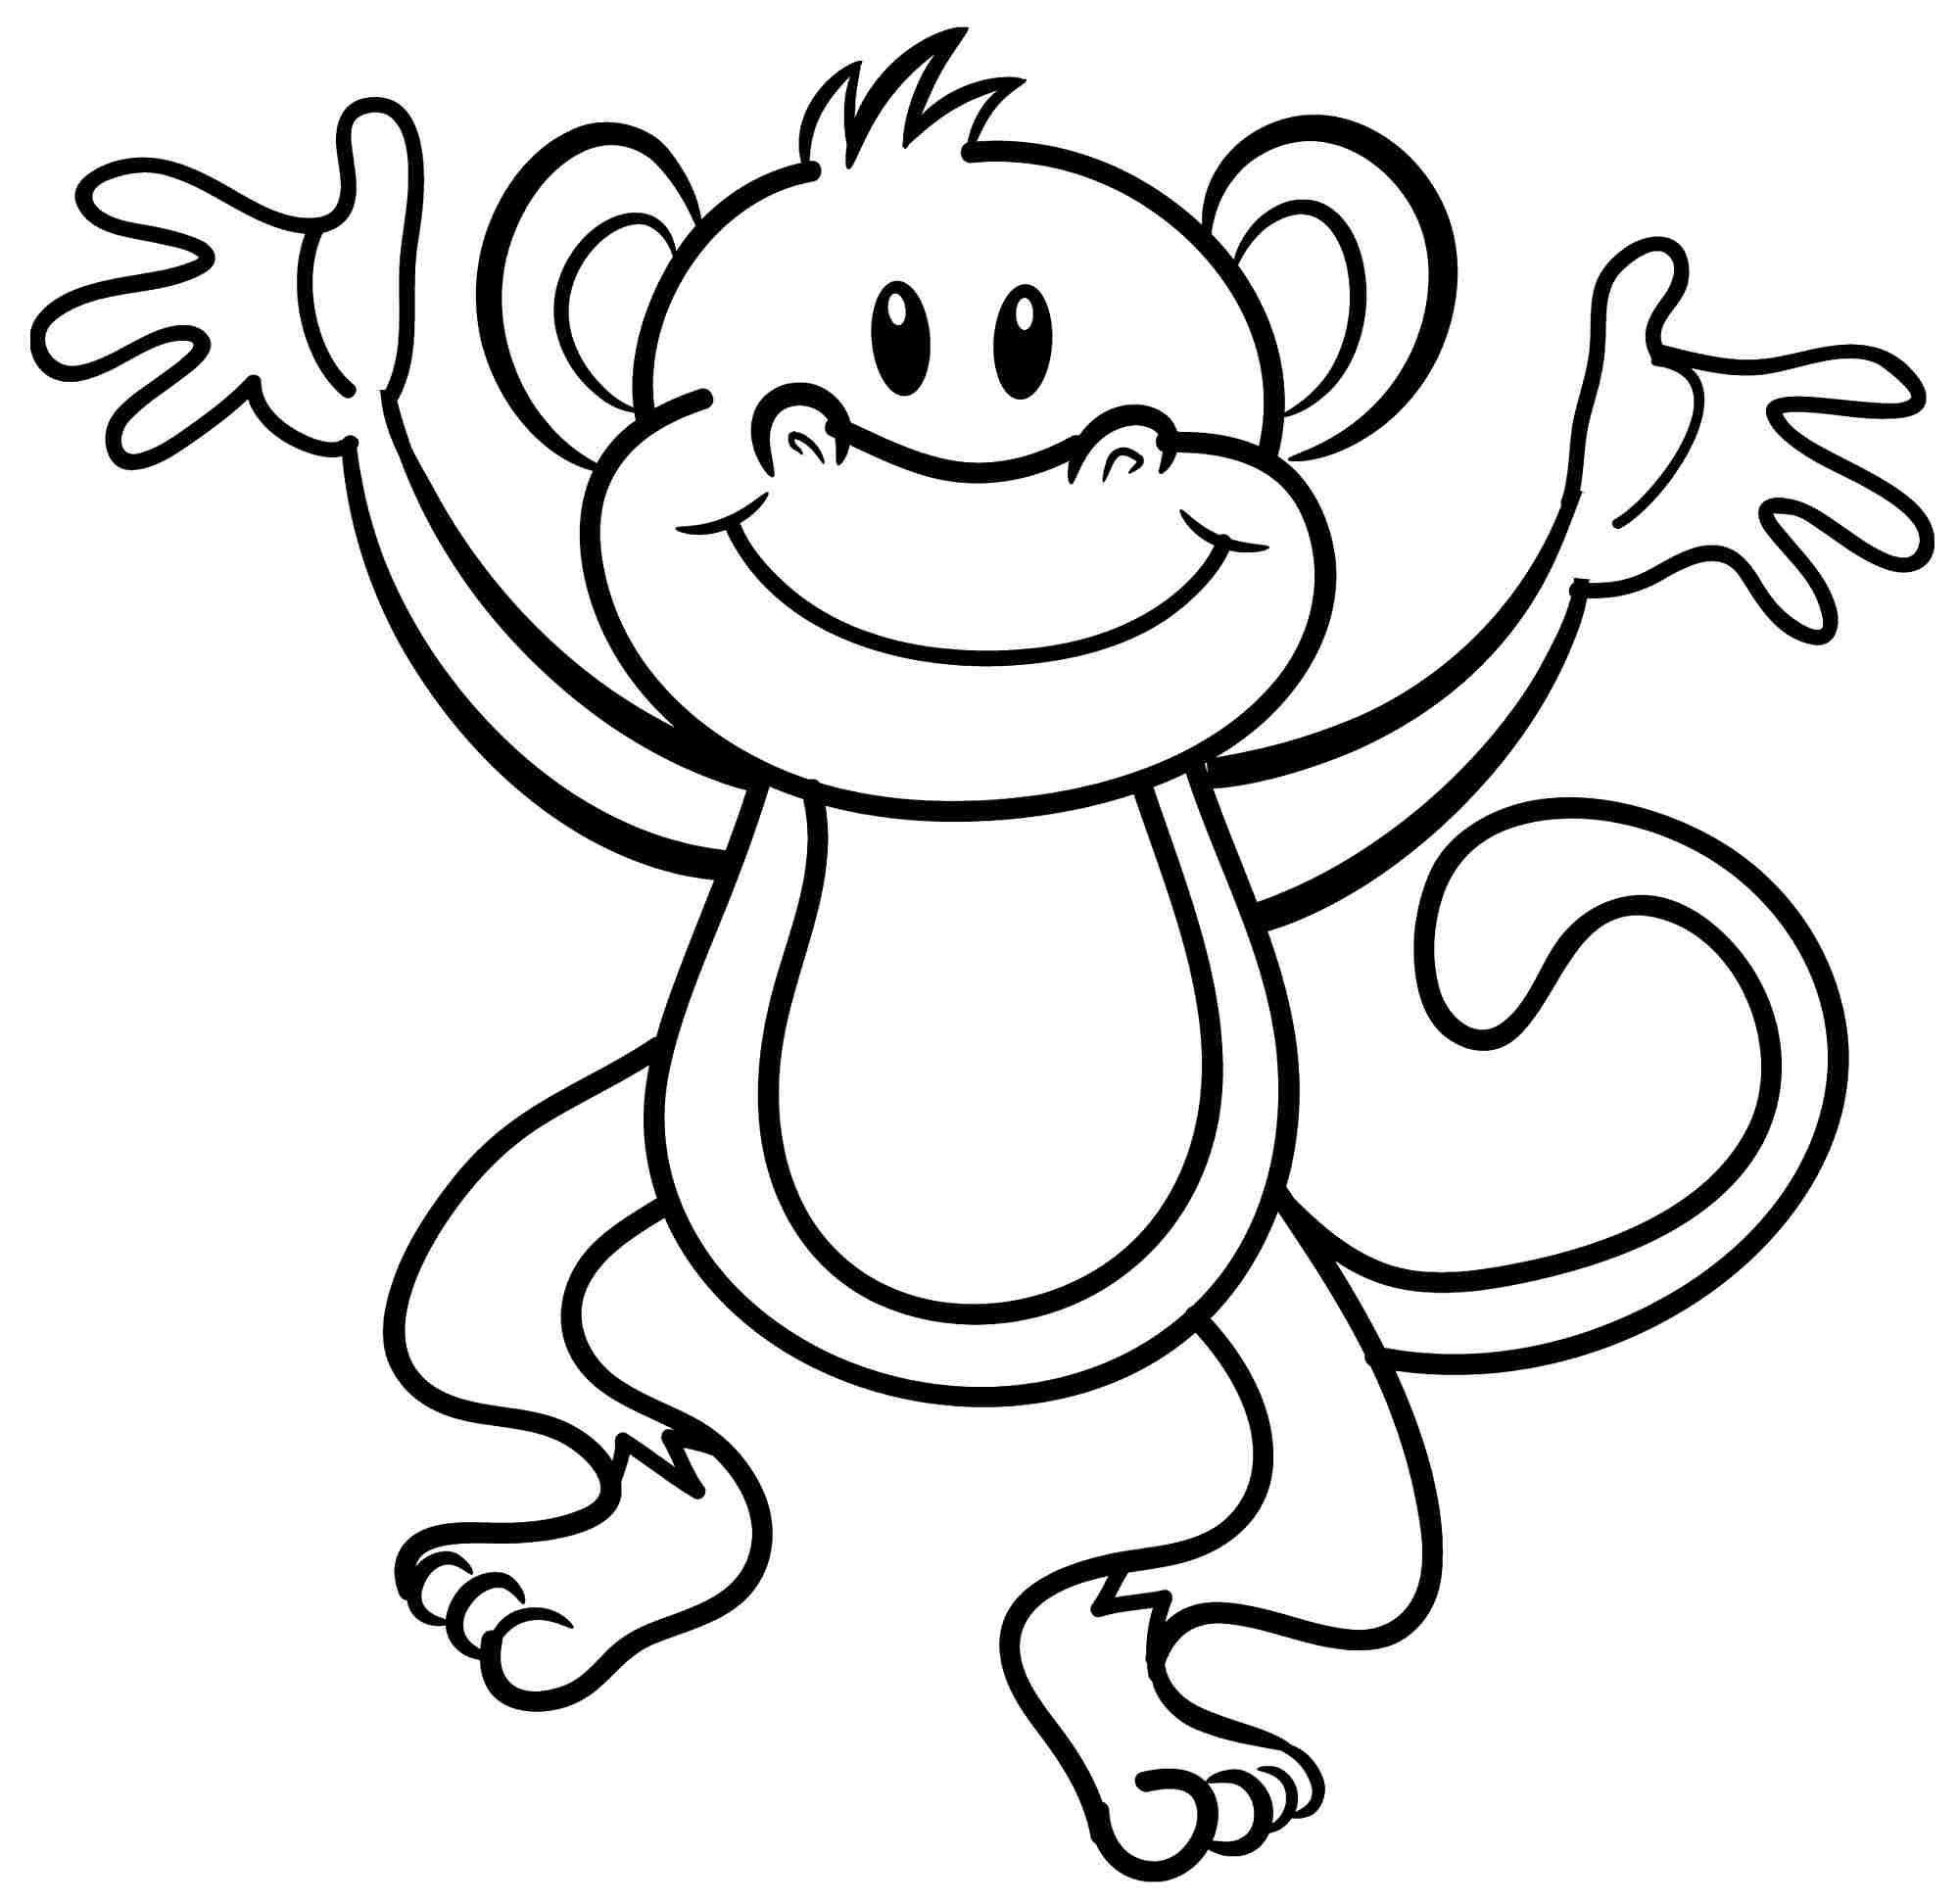 Free coloring pages new year 2016 - Chinese New Year Craft Ideas Monkey Coloring Pages Printable